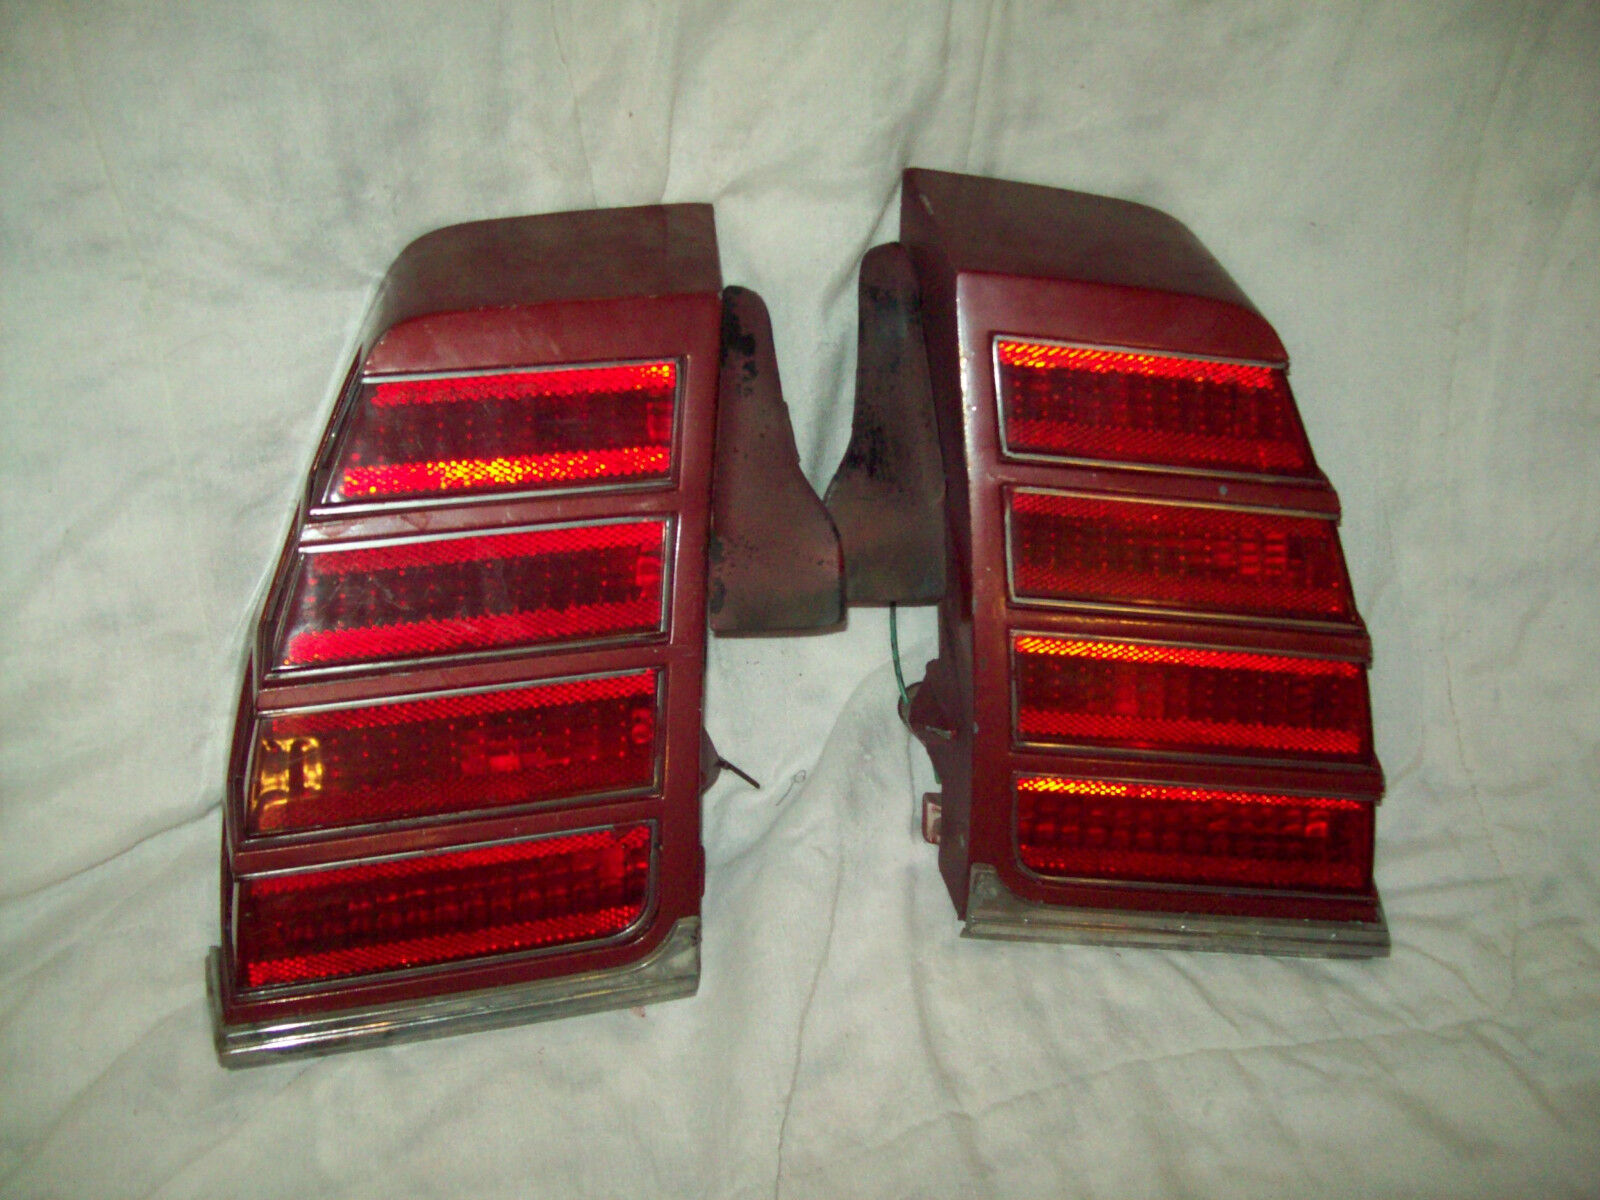 1975 chevrolet monte carlo tail lights pair original equipment with bezels